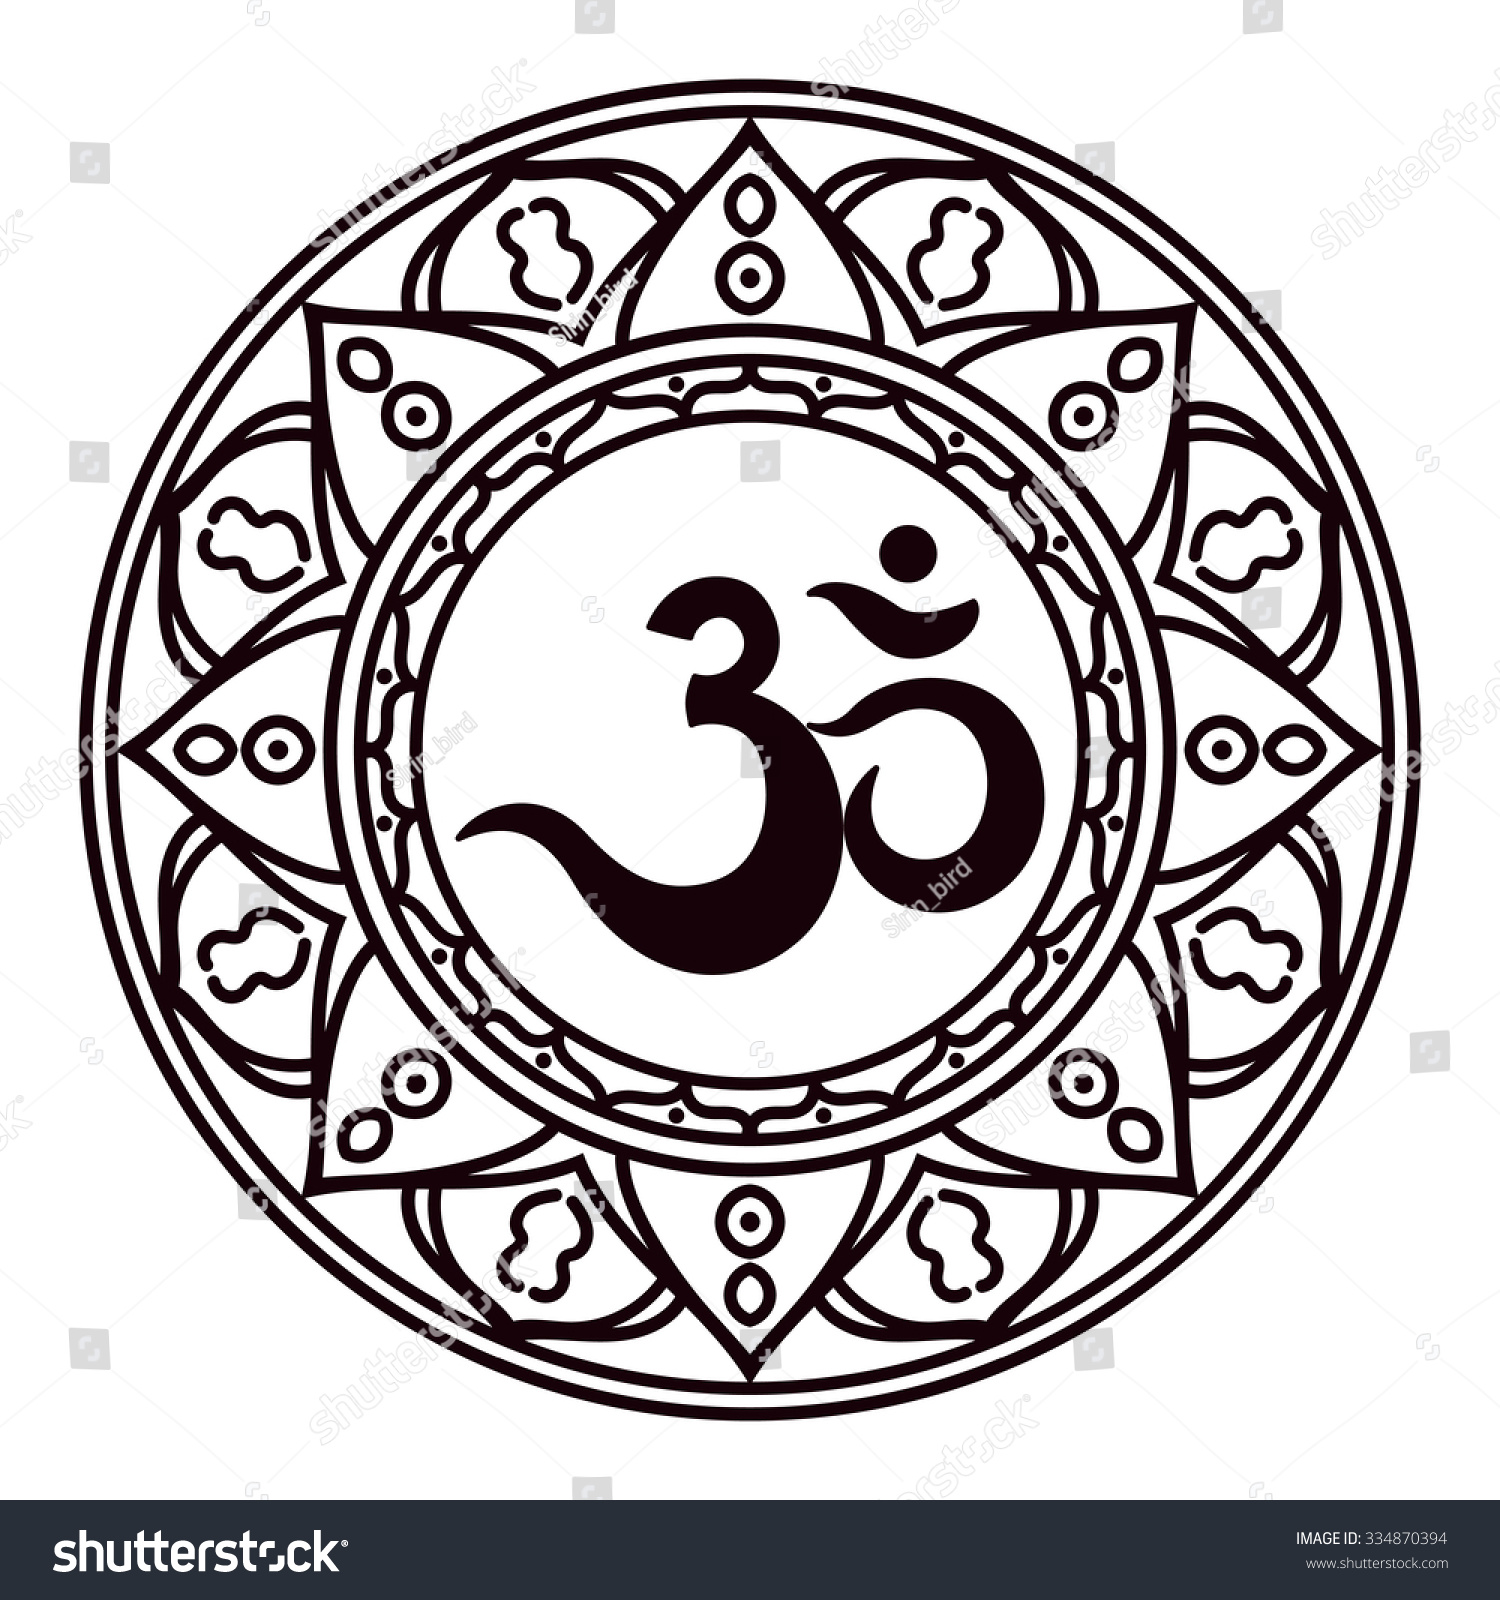 Mantra A Word Of Power The Symbol Divine Triad Brahma Vishnu And Shiva Rich Round Mandala For Prints Textiles Mehendi Coloring Book